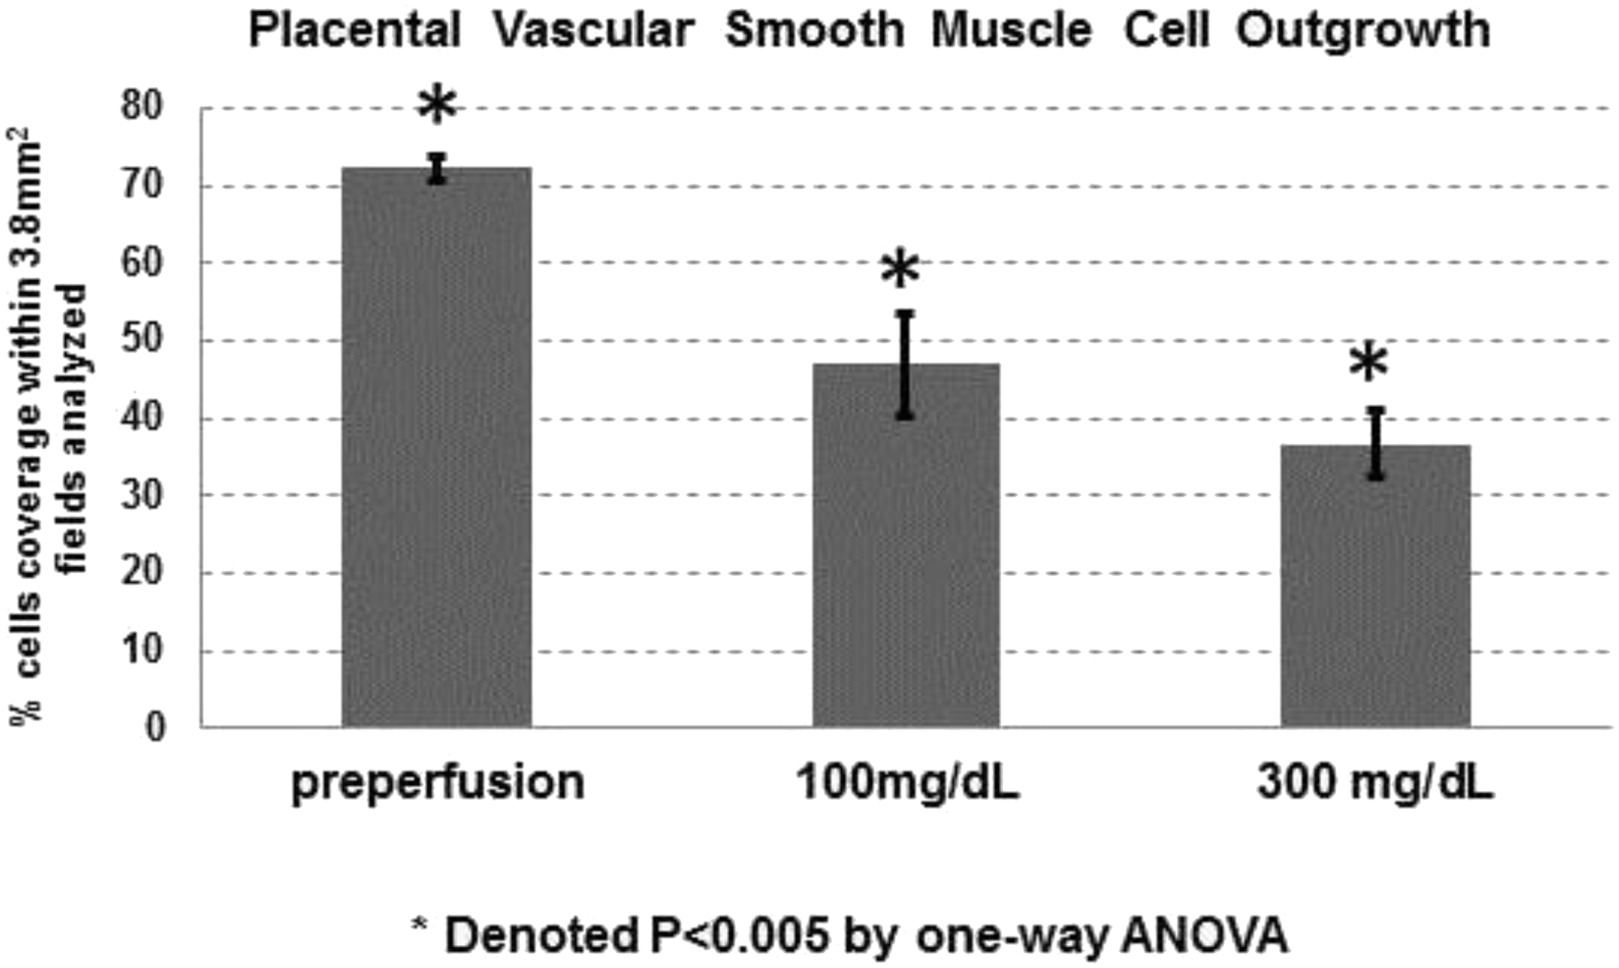 143 Maternal Hyperglycemia Causes Reduced Arterial Smooth Muscle Cell Outgrowth In Chorionic